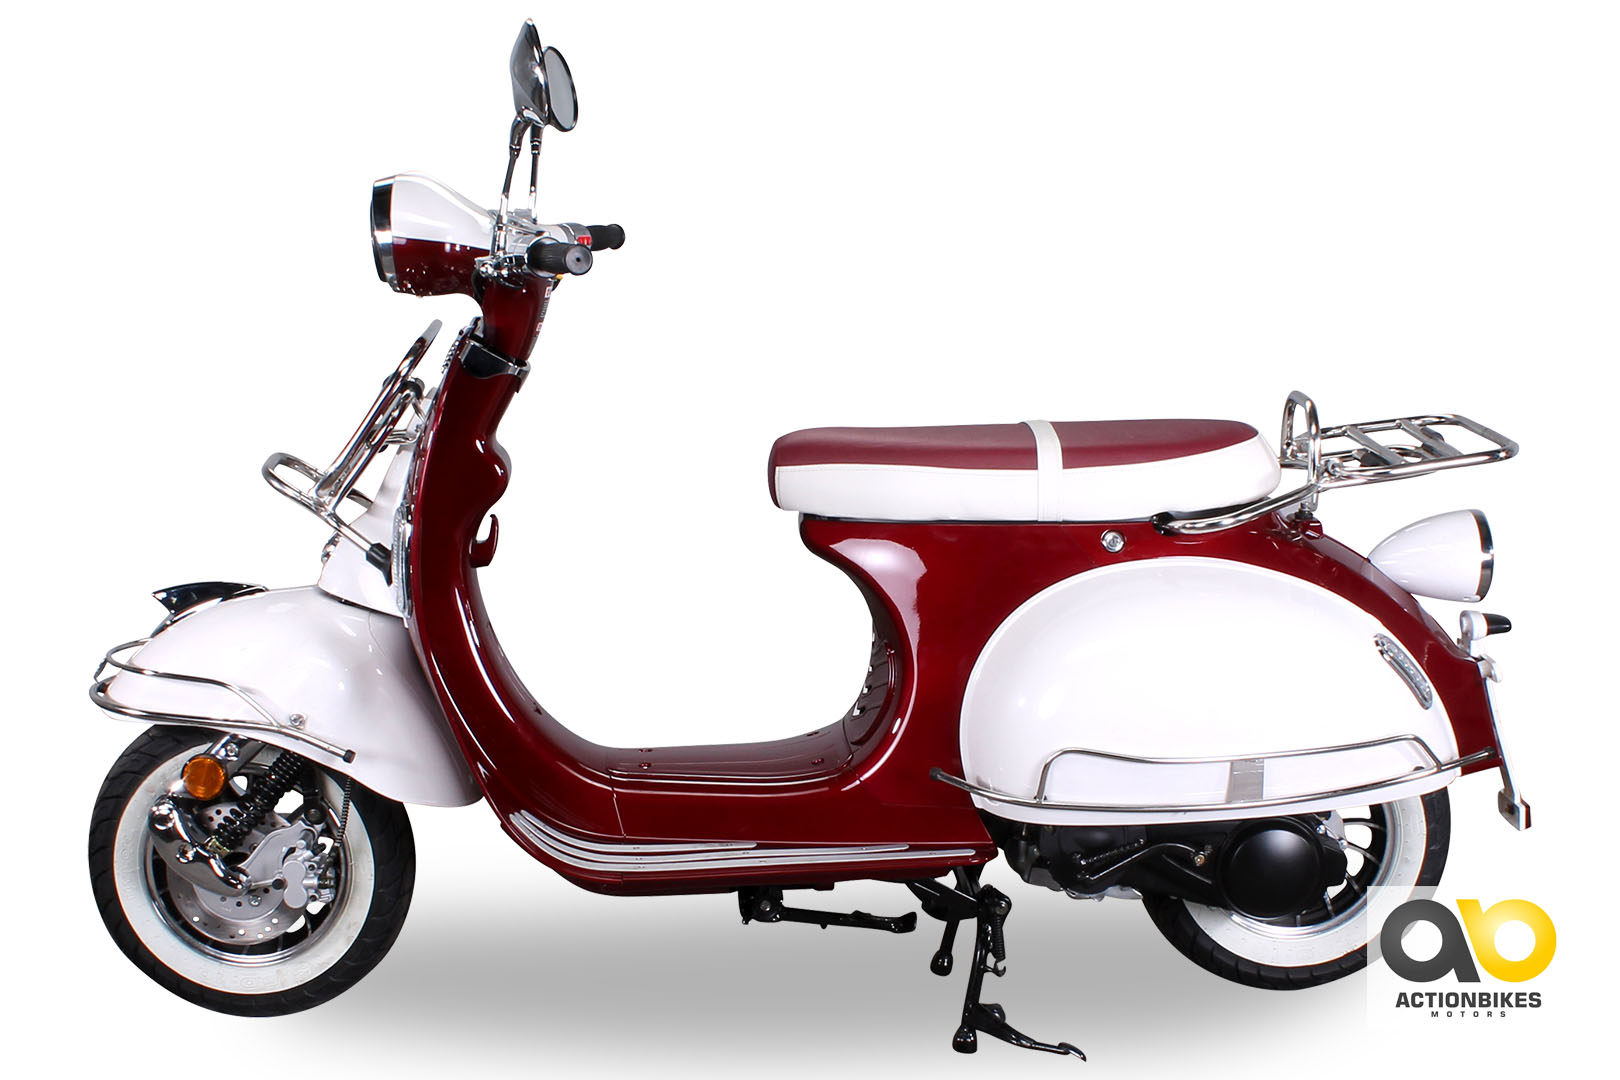 znen r tro toile scooter 125 cc scooter r tro scooter scooter 125 ccm. Black Bedroom Furniture Sets. Home Design Ideas